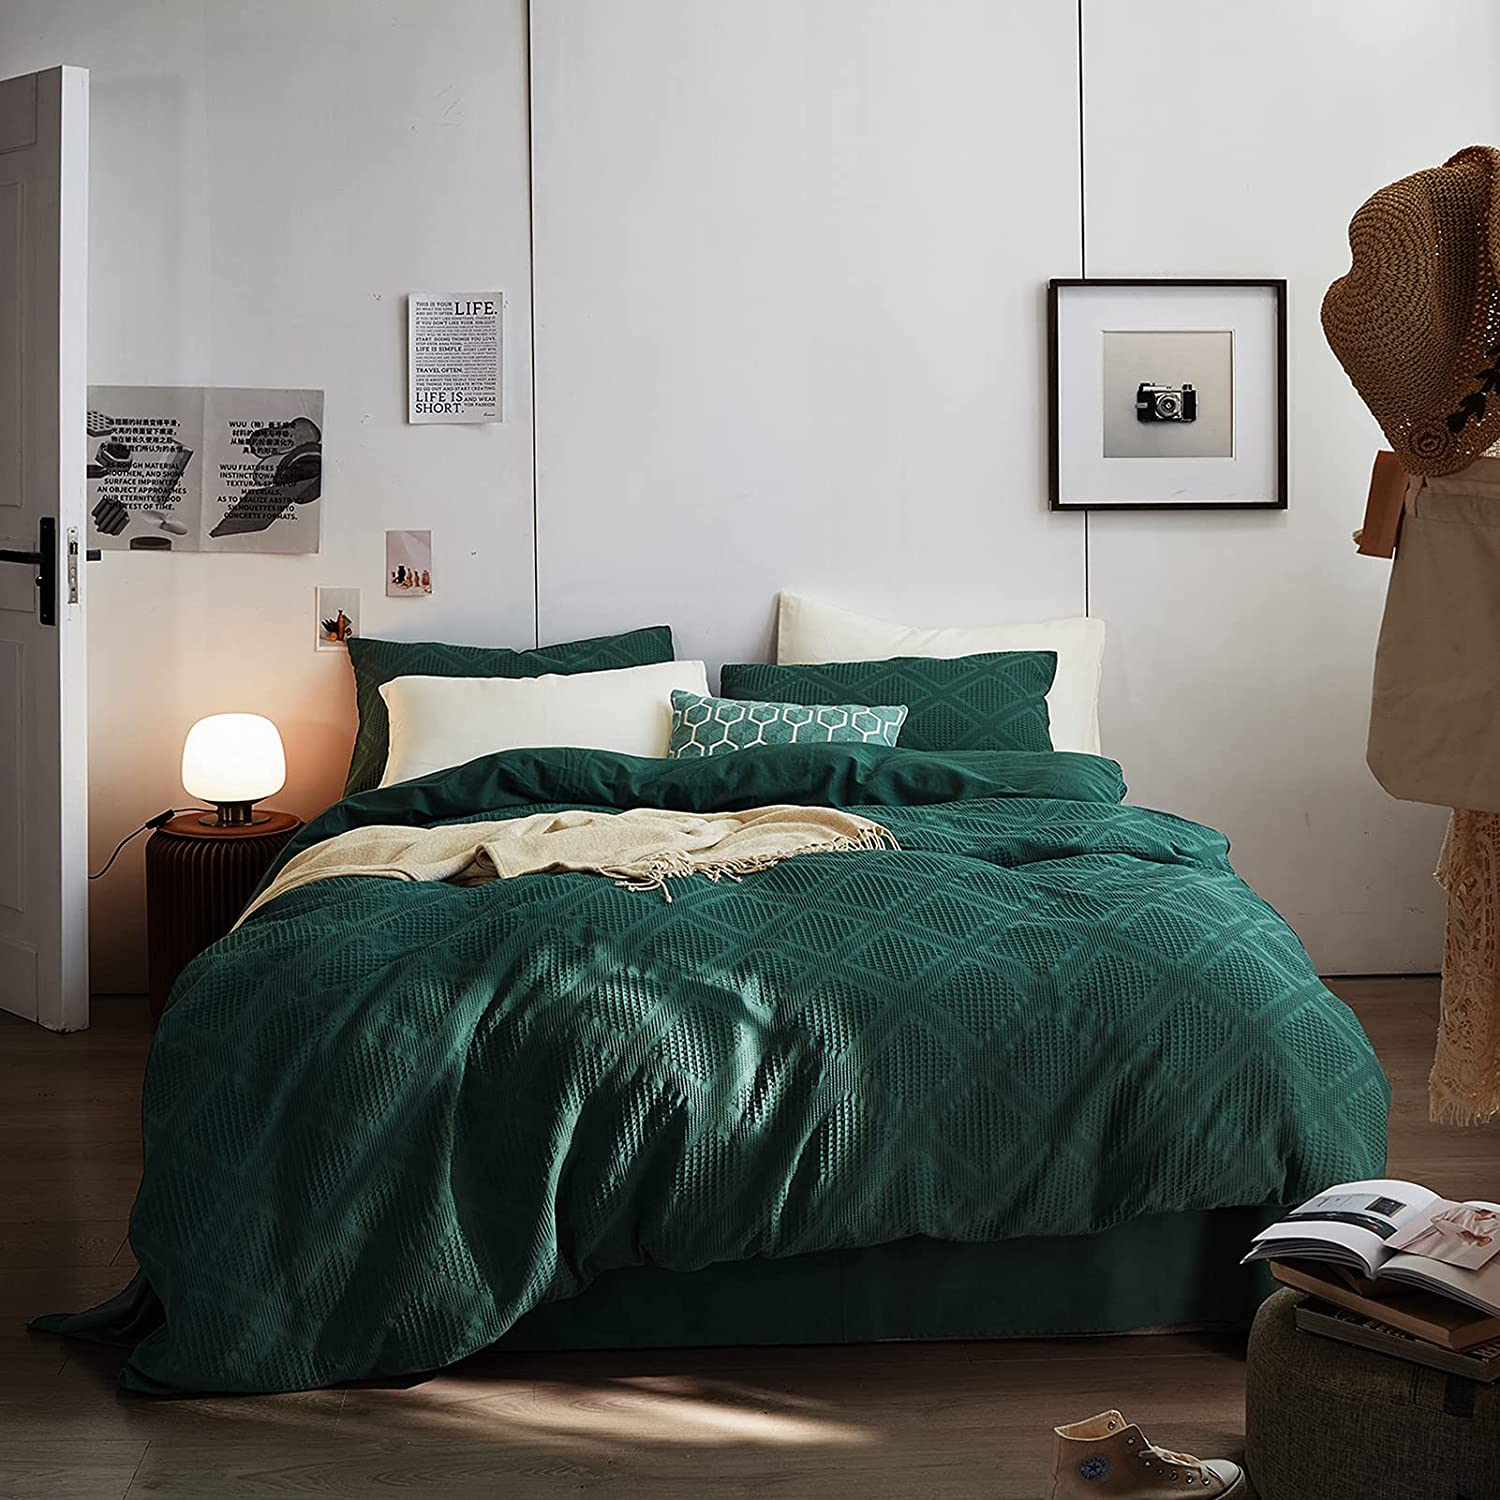 Popular shop is the lowest price Max 53% OFF challenge STACYPIK 3 PCS Emerald Green Waffle Duvet Covers King So - Weave